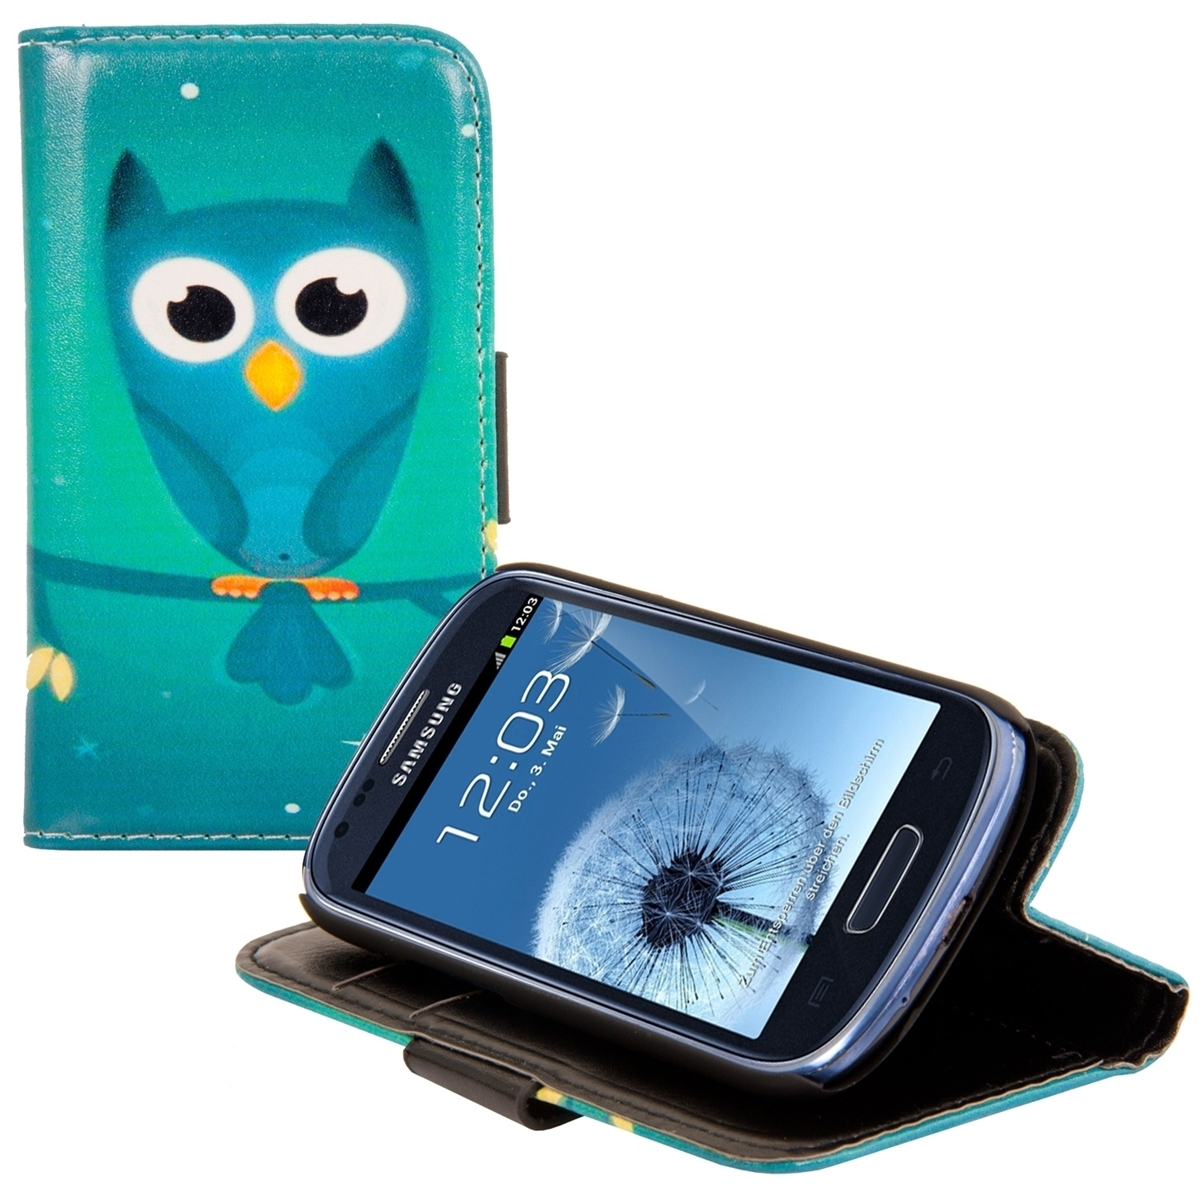 kwmobile-BORSA-DI-ECOPELLE-PER-SAMSUNG-GALAXY-S3-MINI-CUSTODIA-COVER-ASTUCCIO